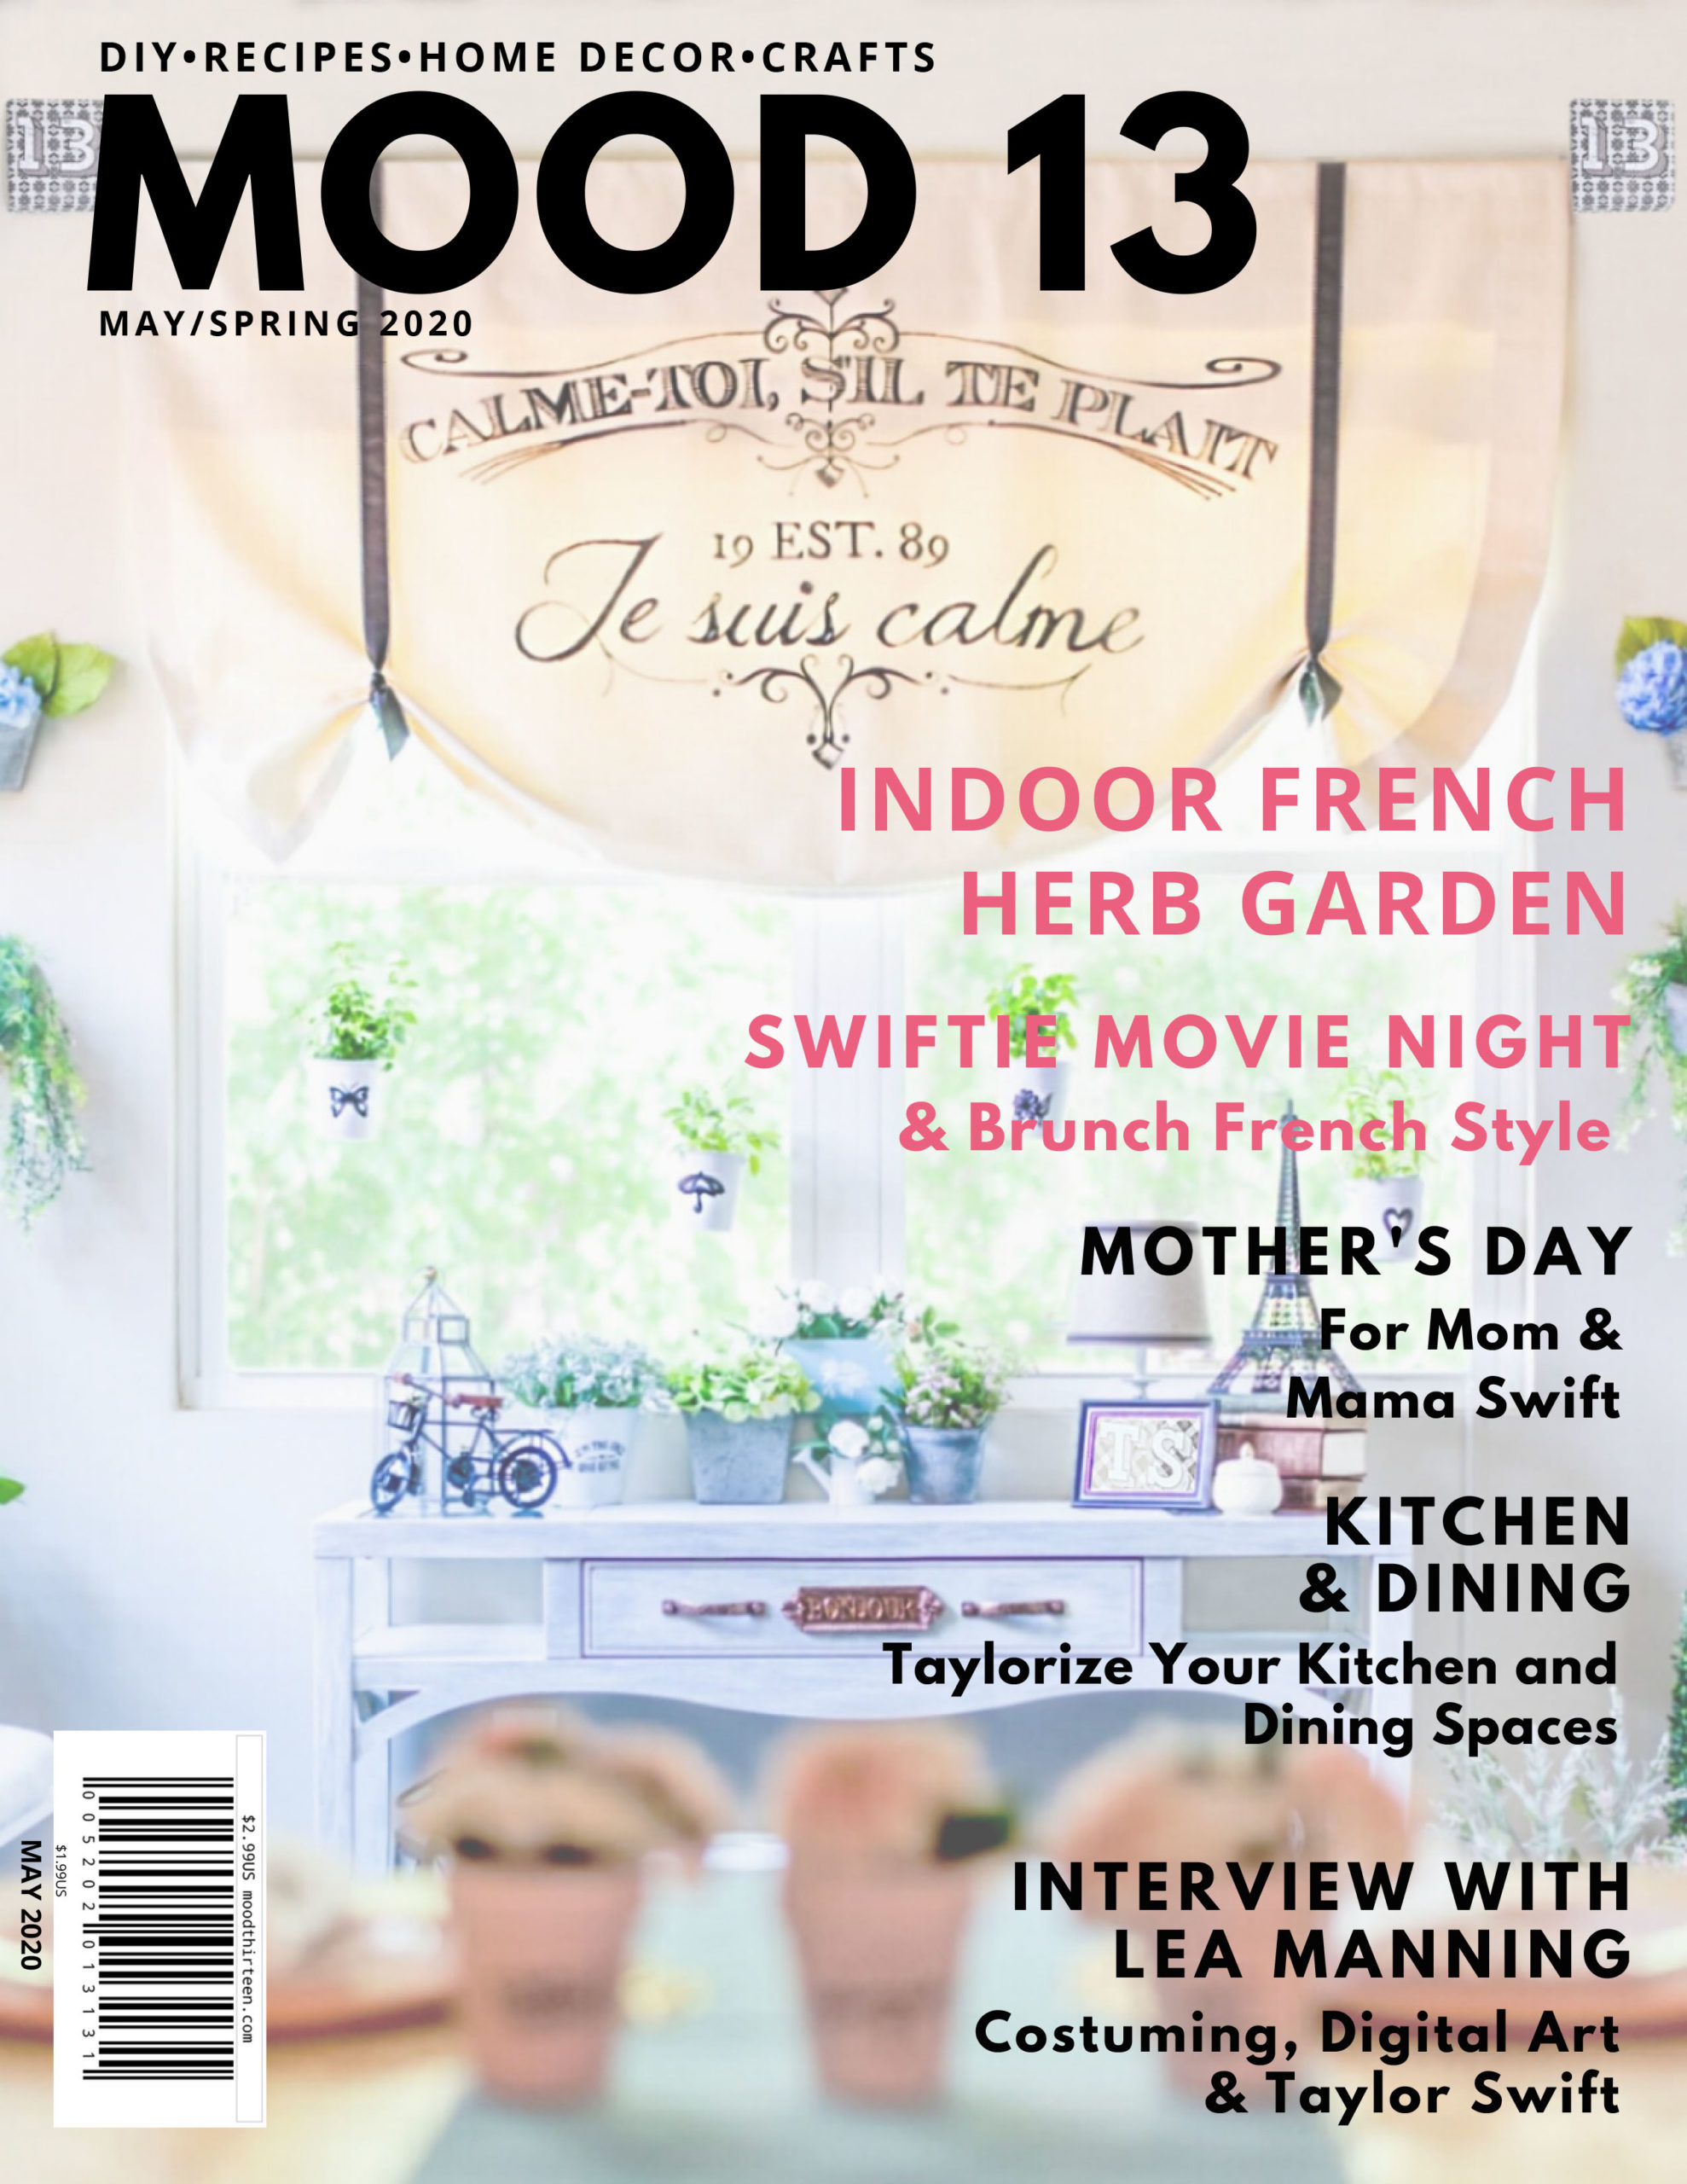 Mood 13 – An Online Magazine For Swifties Available Now